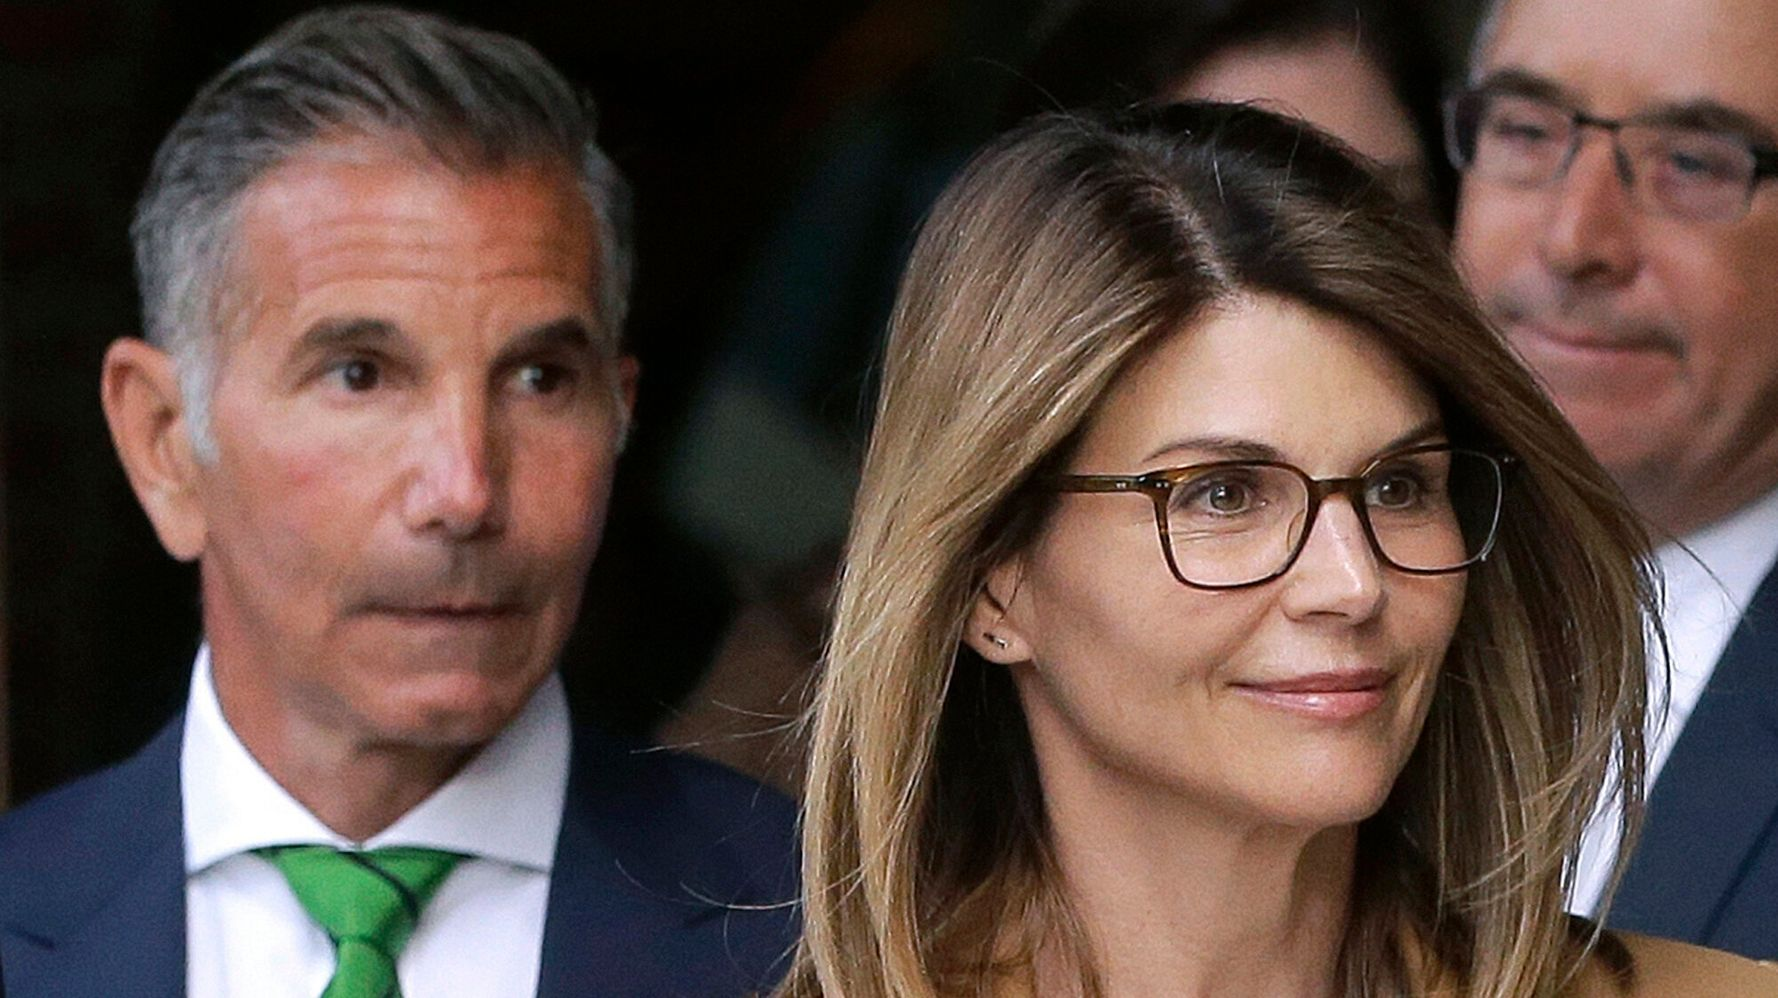 Feds Urge Judge To OK Prison Deals For Lori Loughlin, Mossimo Giannulli 1